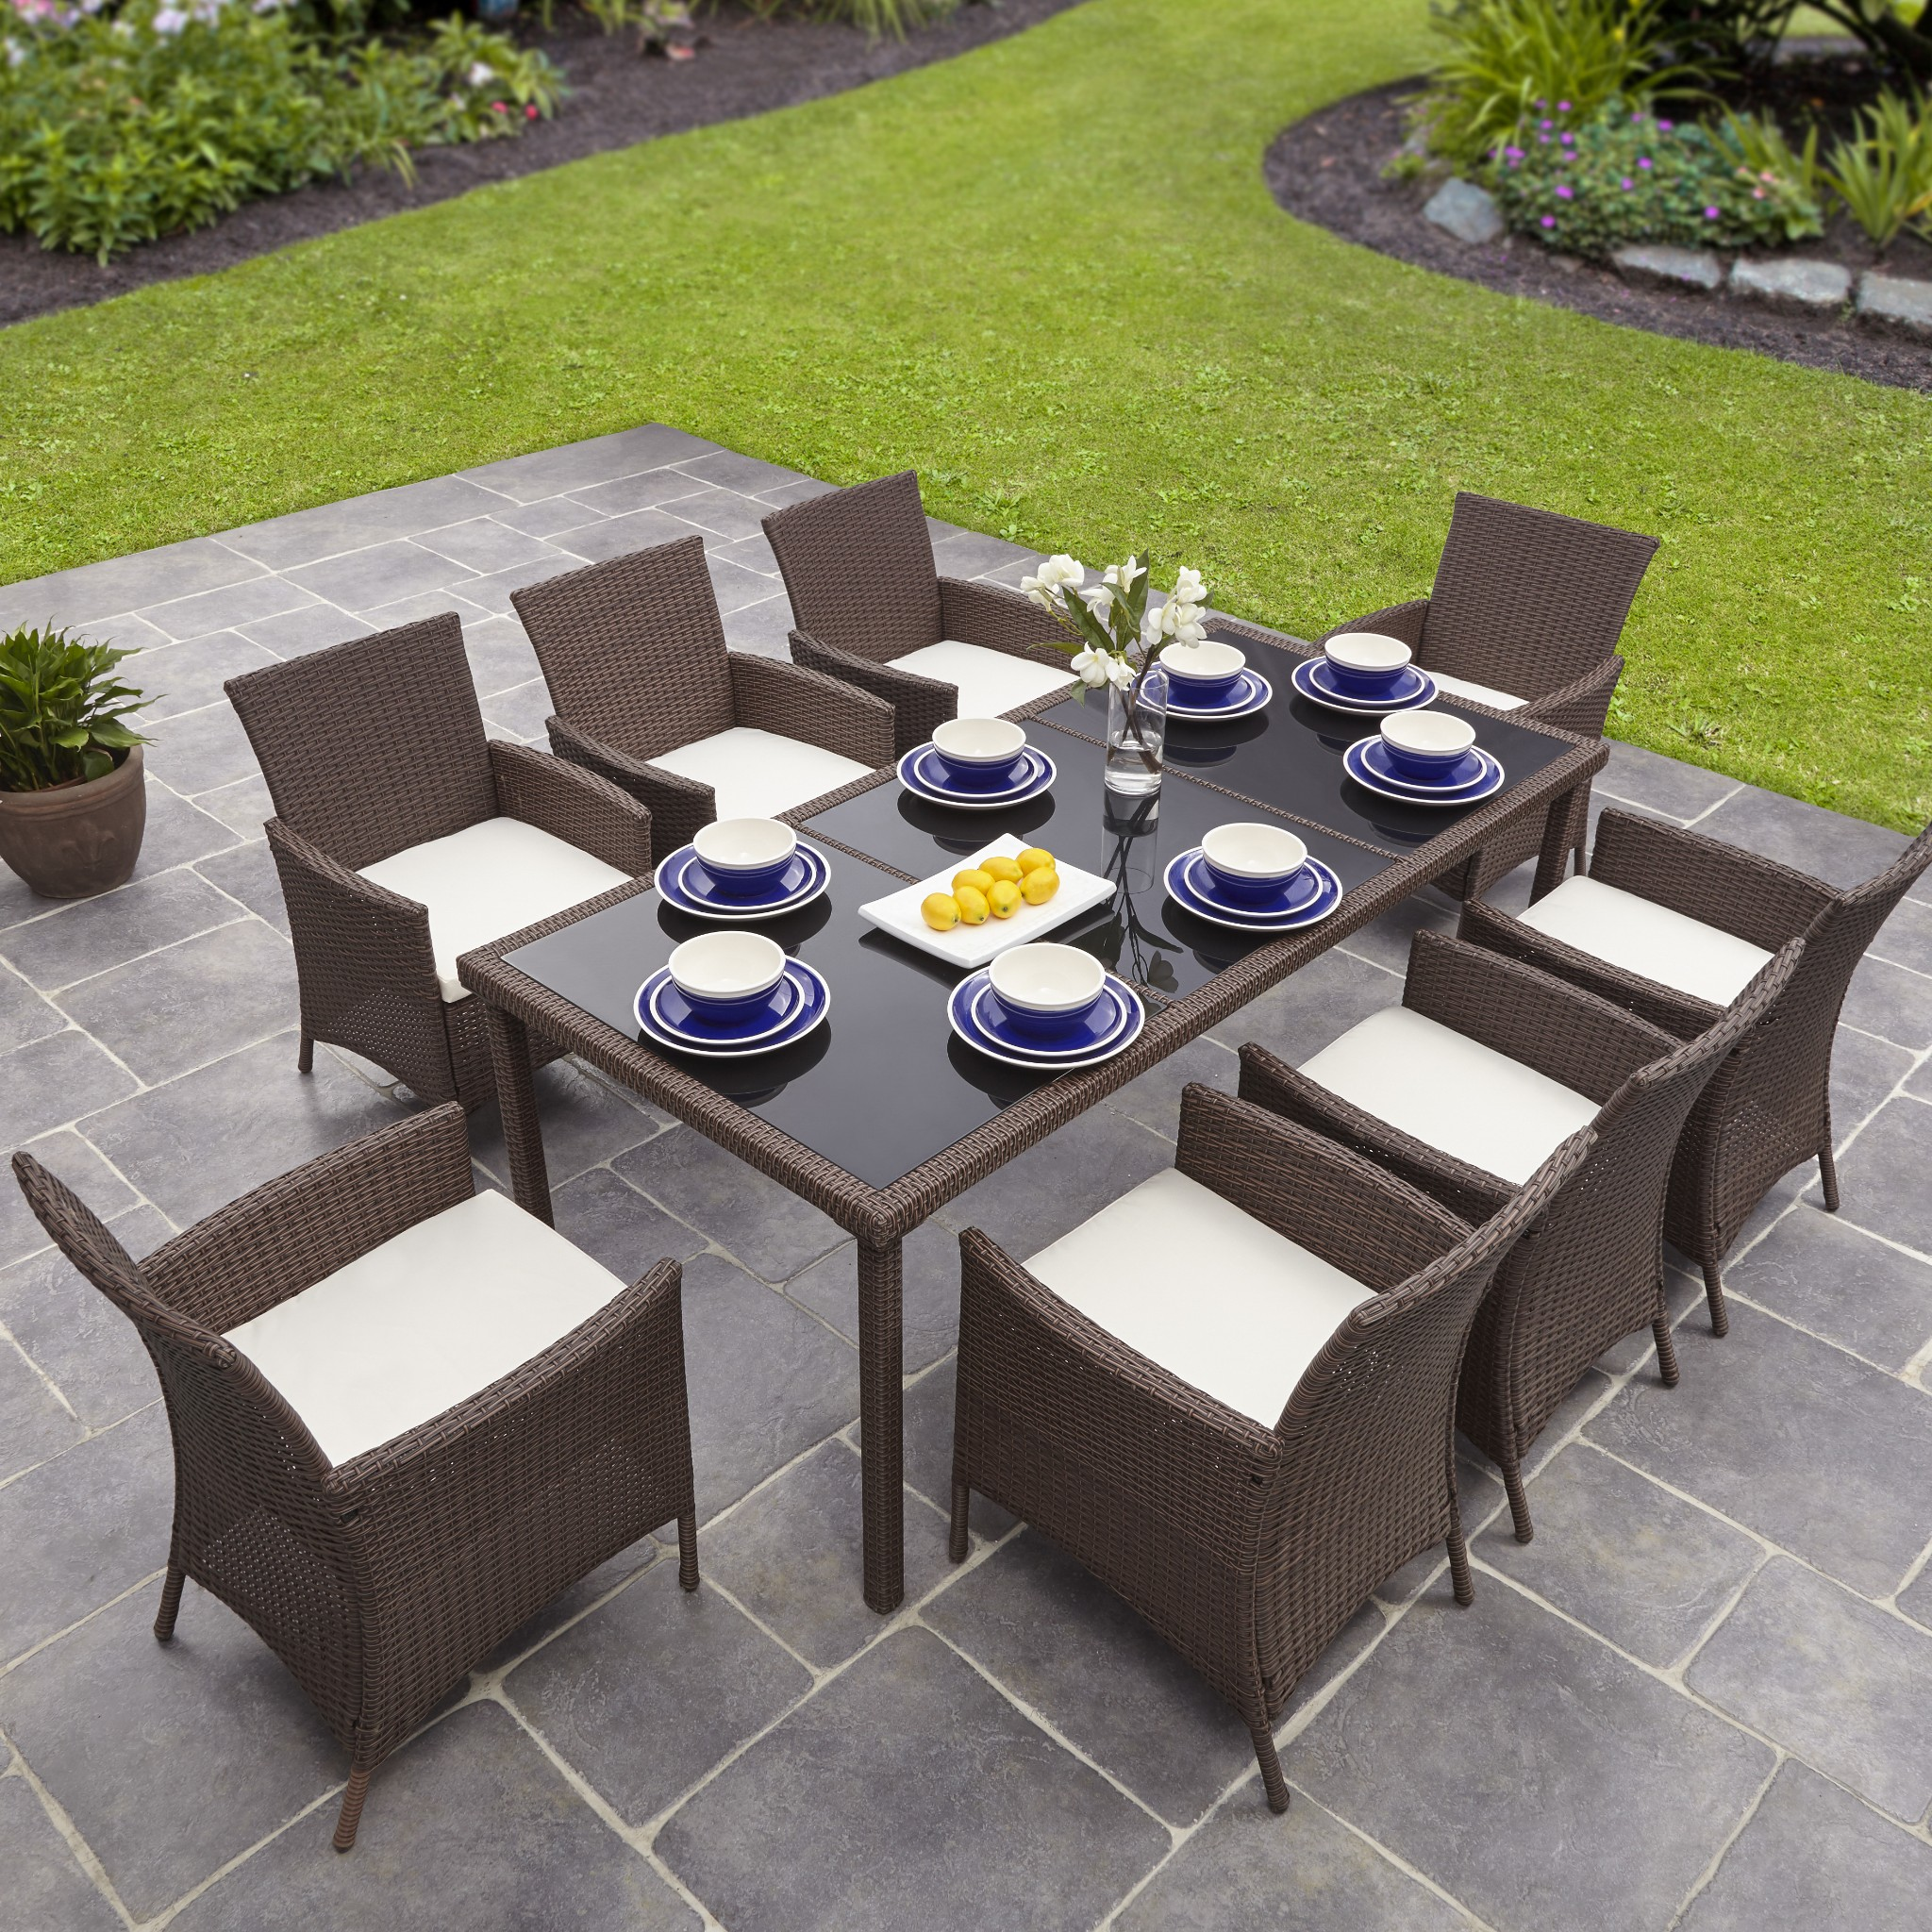 rectangular in table garden mix large home ideal rattan chair set roma seat and chairs coffee cream chocolate